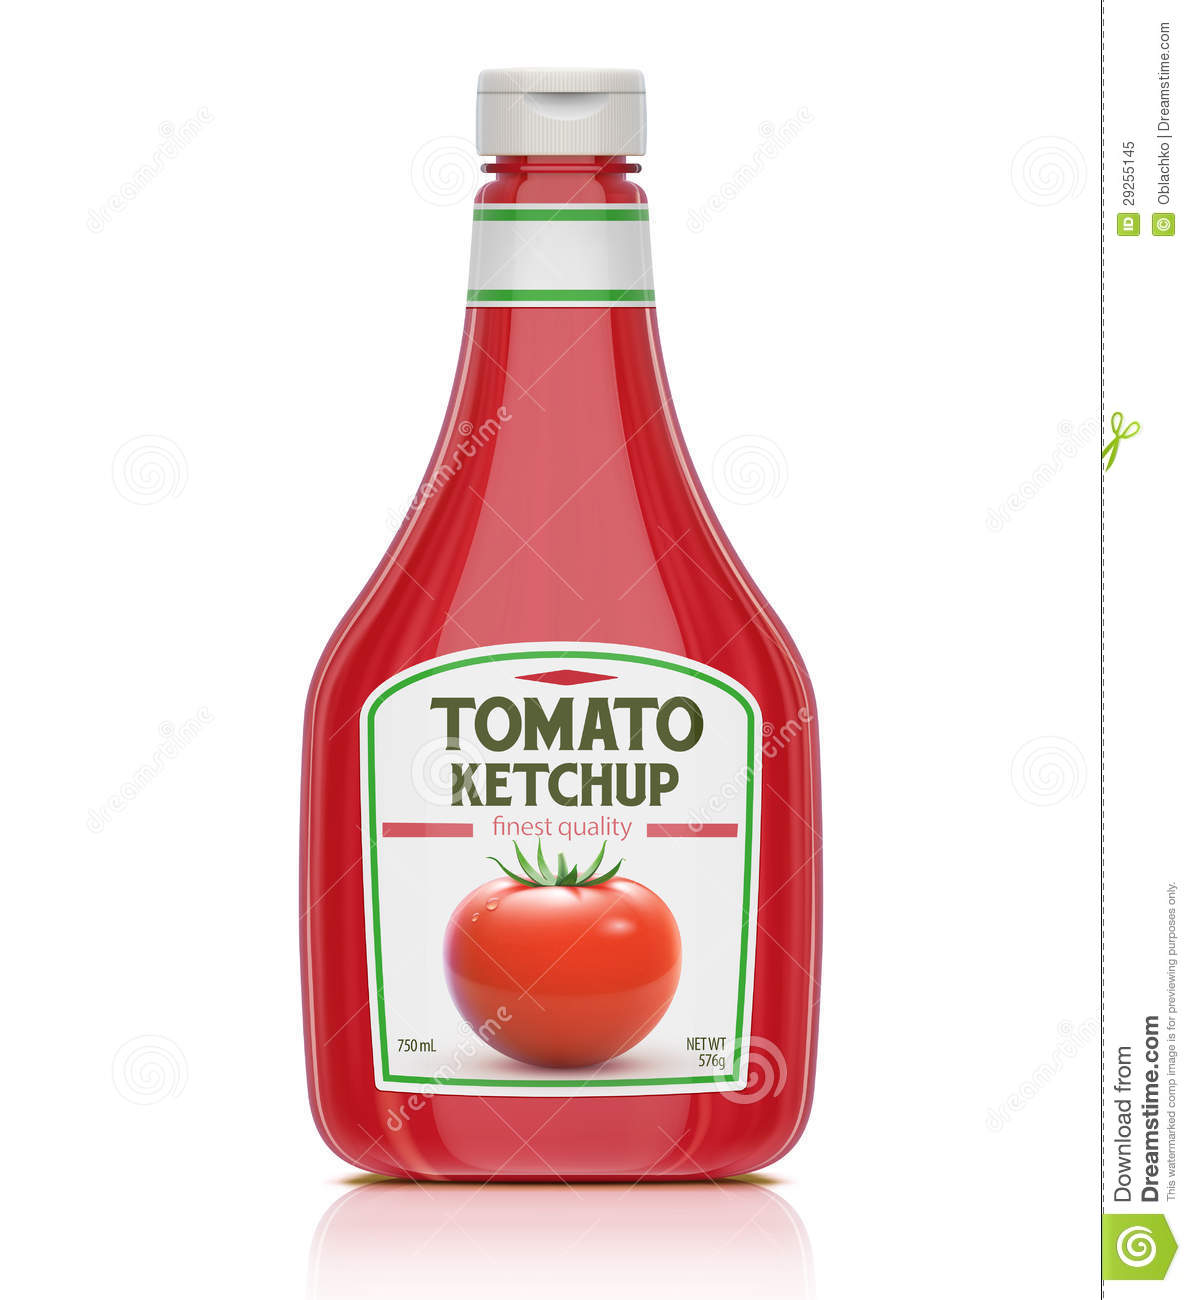 Vector illustration of ketchup bottle on white background.